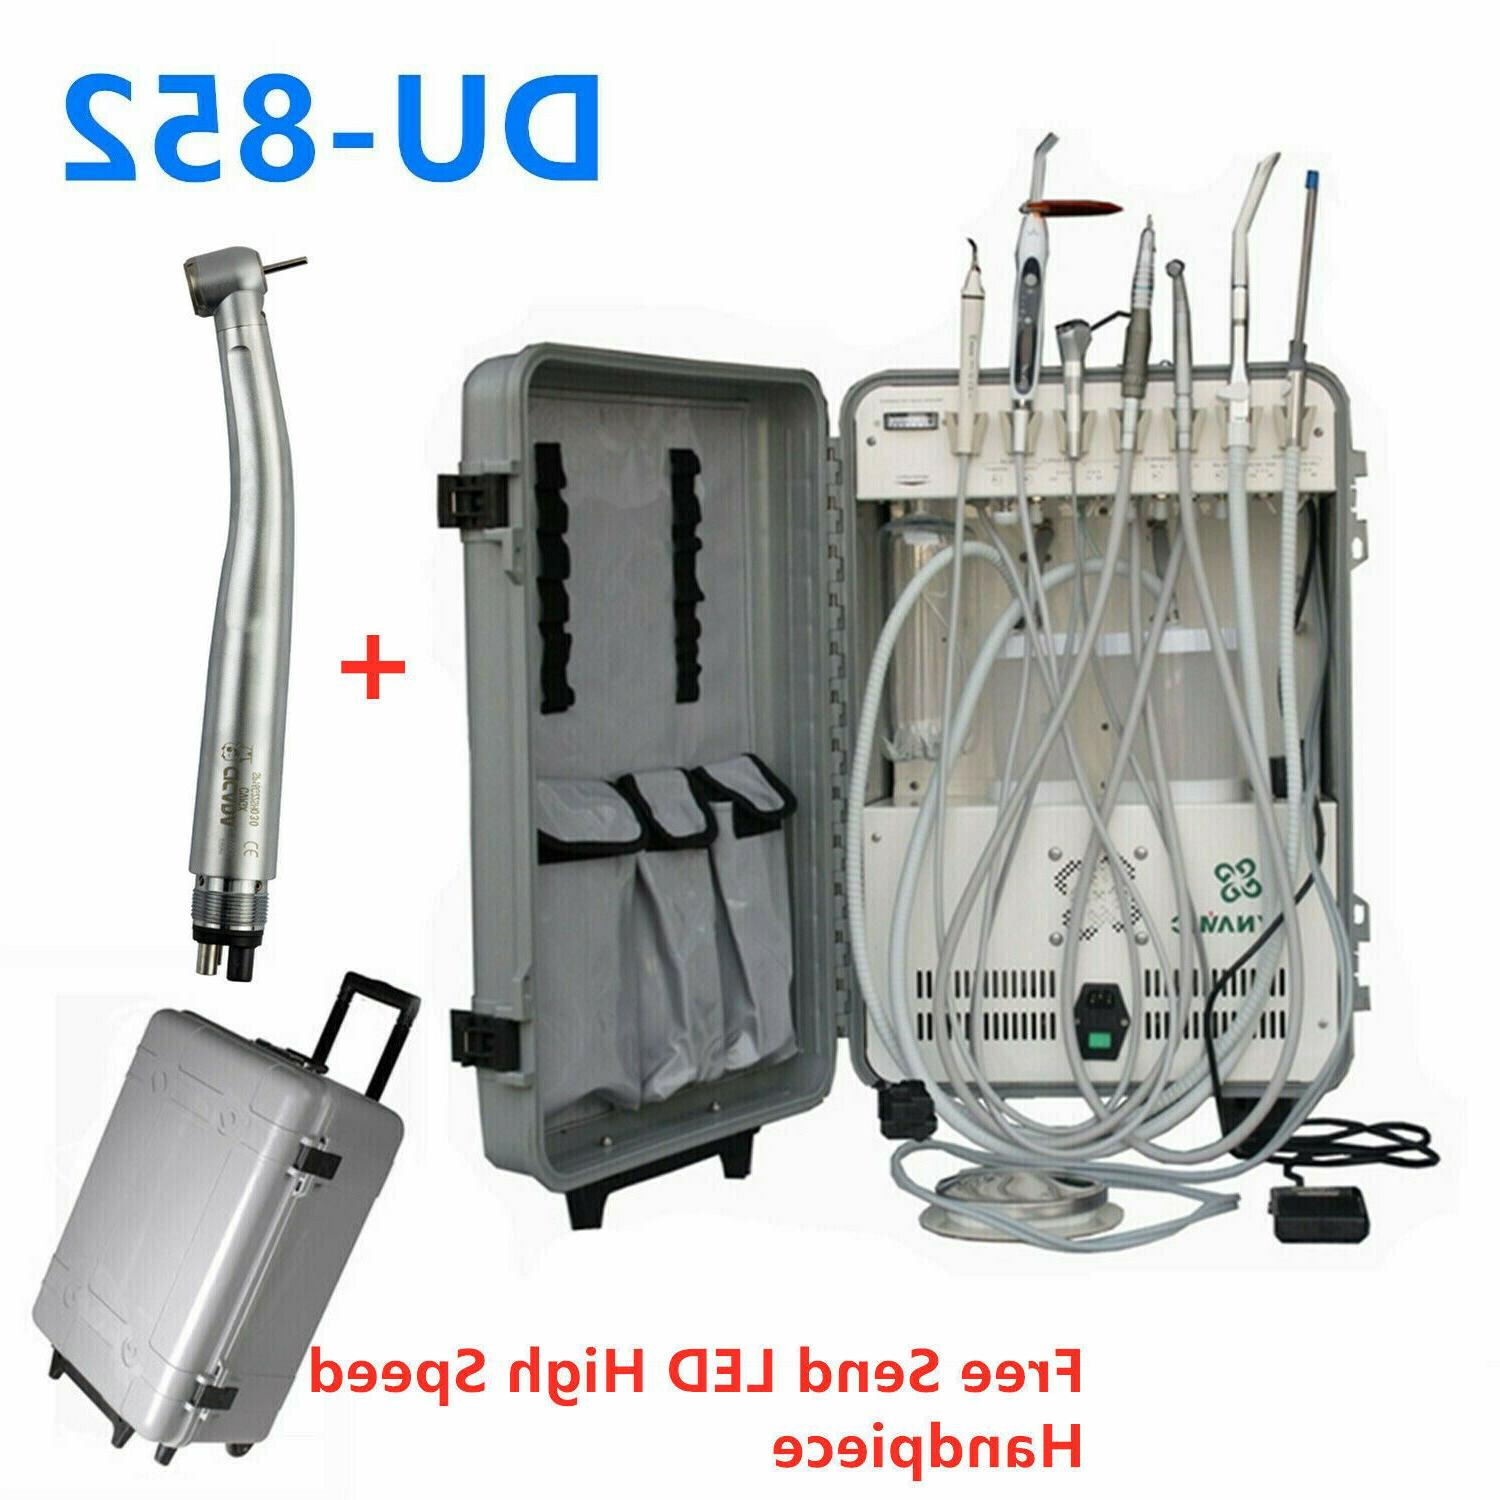 bpa free double microcomputer usb electric breast